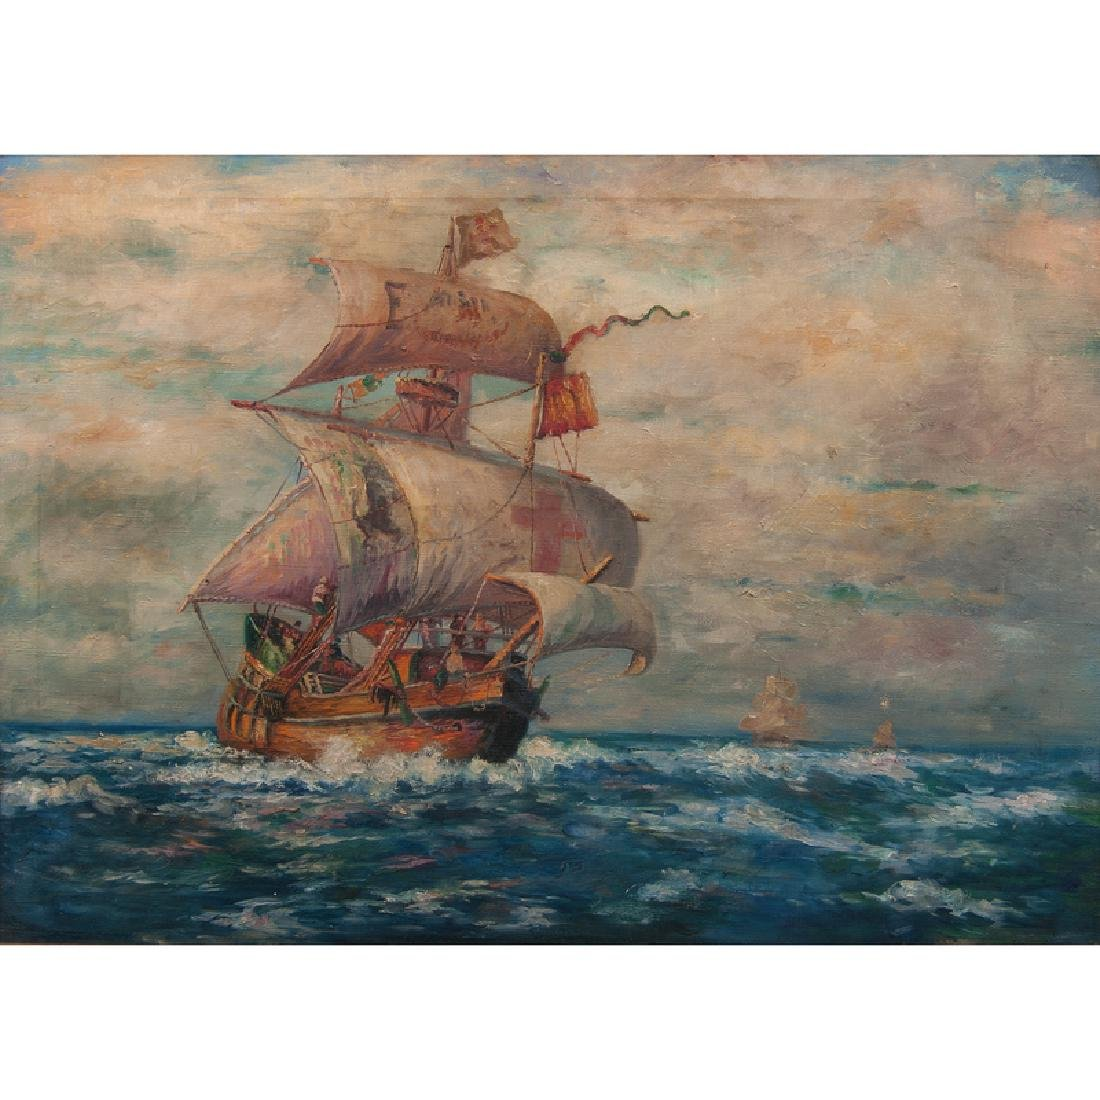 19th Century Painting of Spanish Galleon at Sea, Oil on